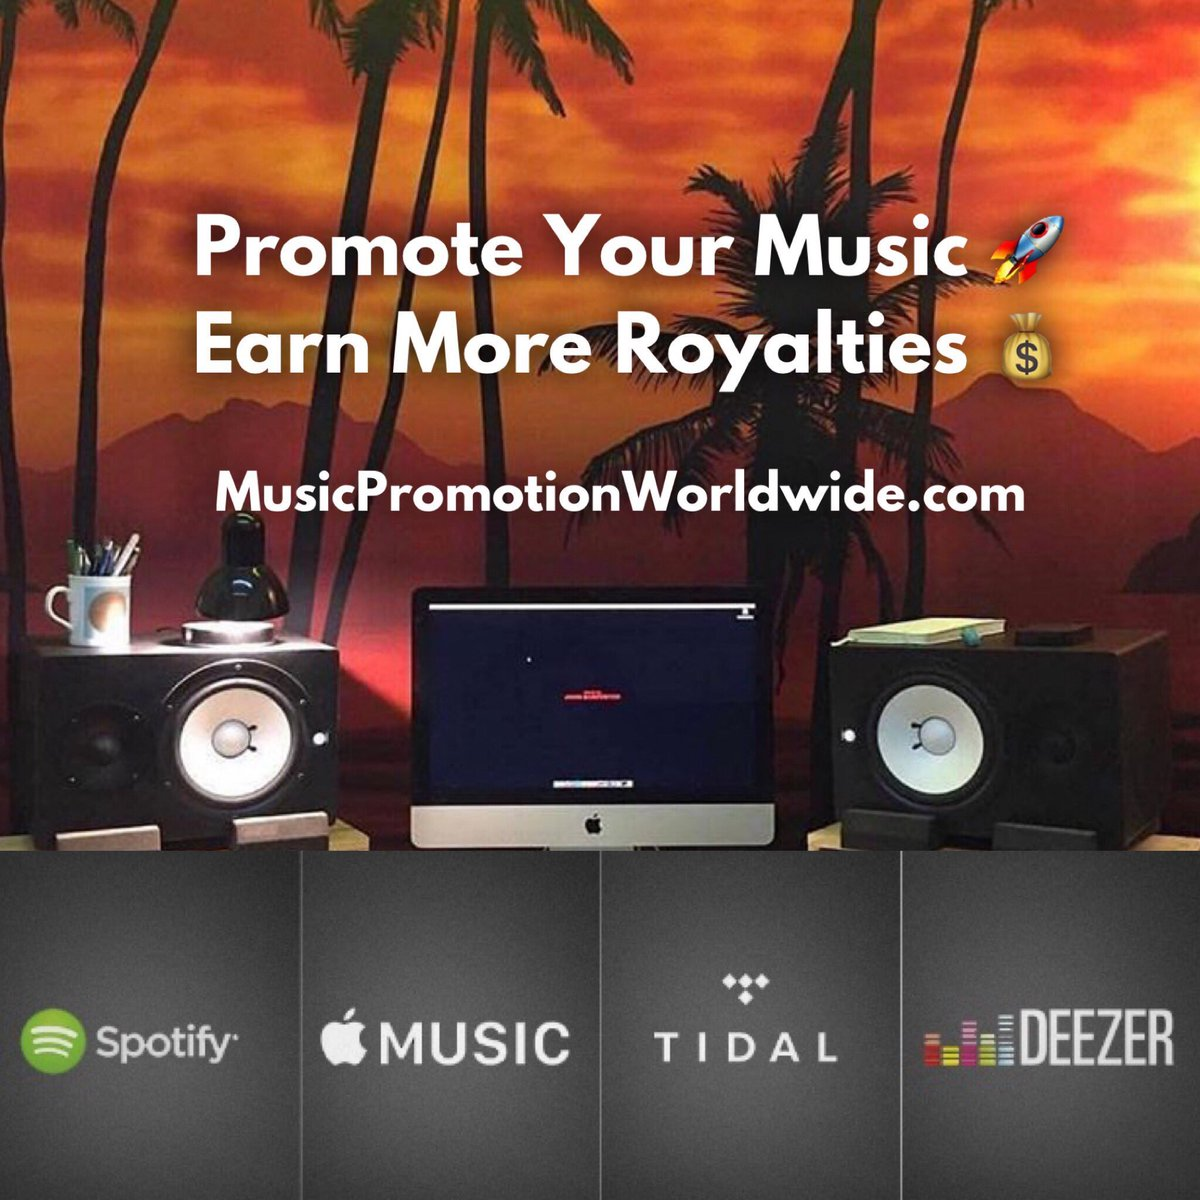 ⭐Exclusive music promotion services for Spotify, Tidal